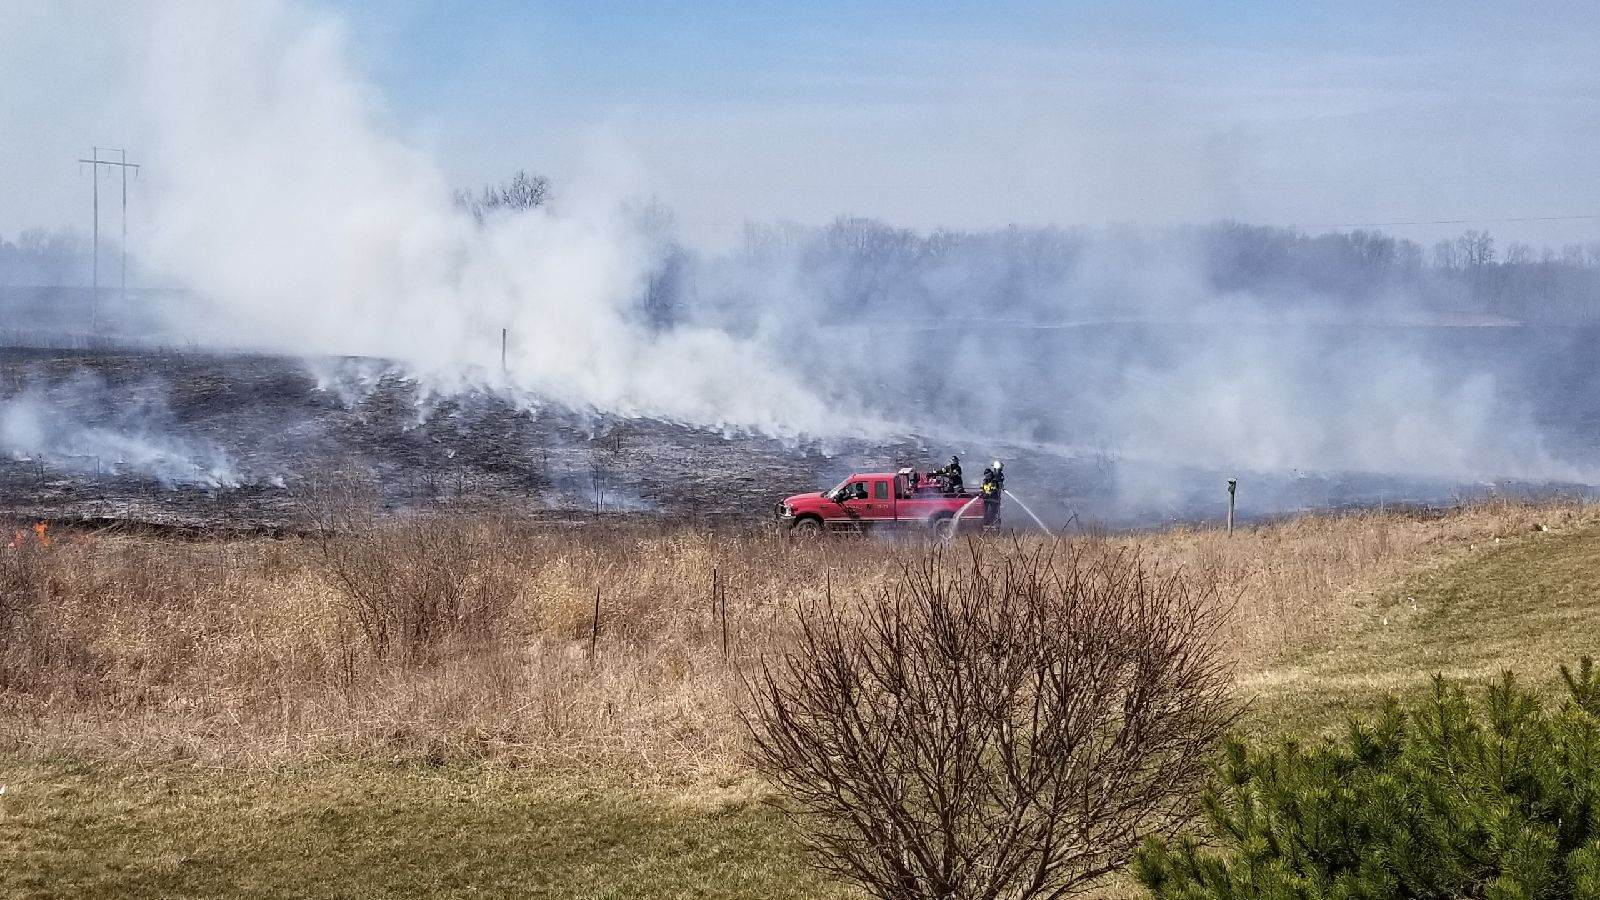 According to Marshall Township fire chief, a controlled burn that got out of hand due to wind conditions at 14693 L Drive North has now burned upwards of 25 acres. Although the fire is mostly under control now, fire officials are still working to get it under control. (Mike Savola)